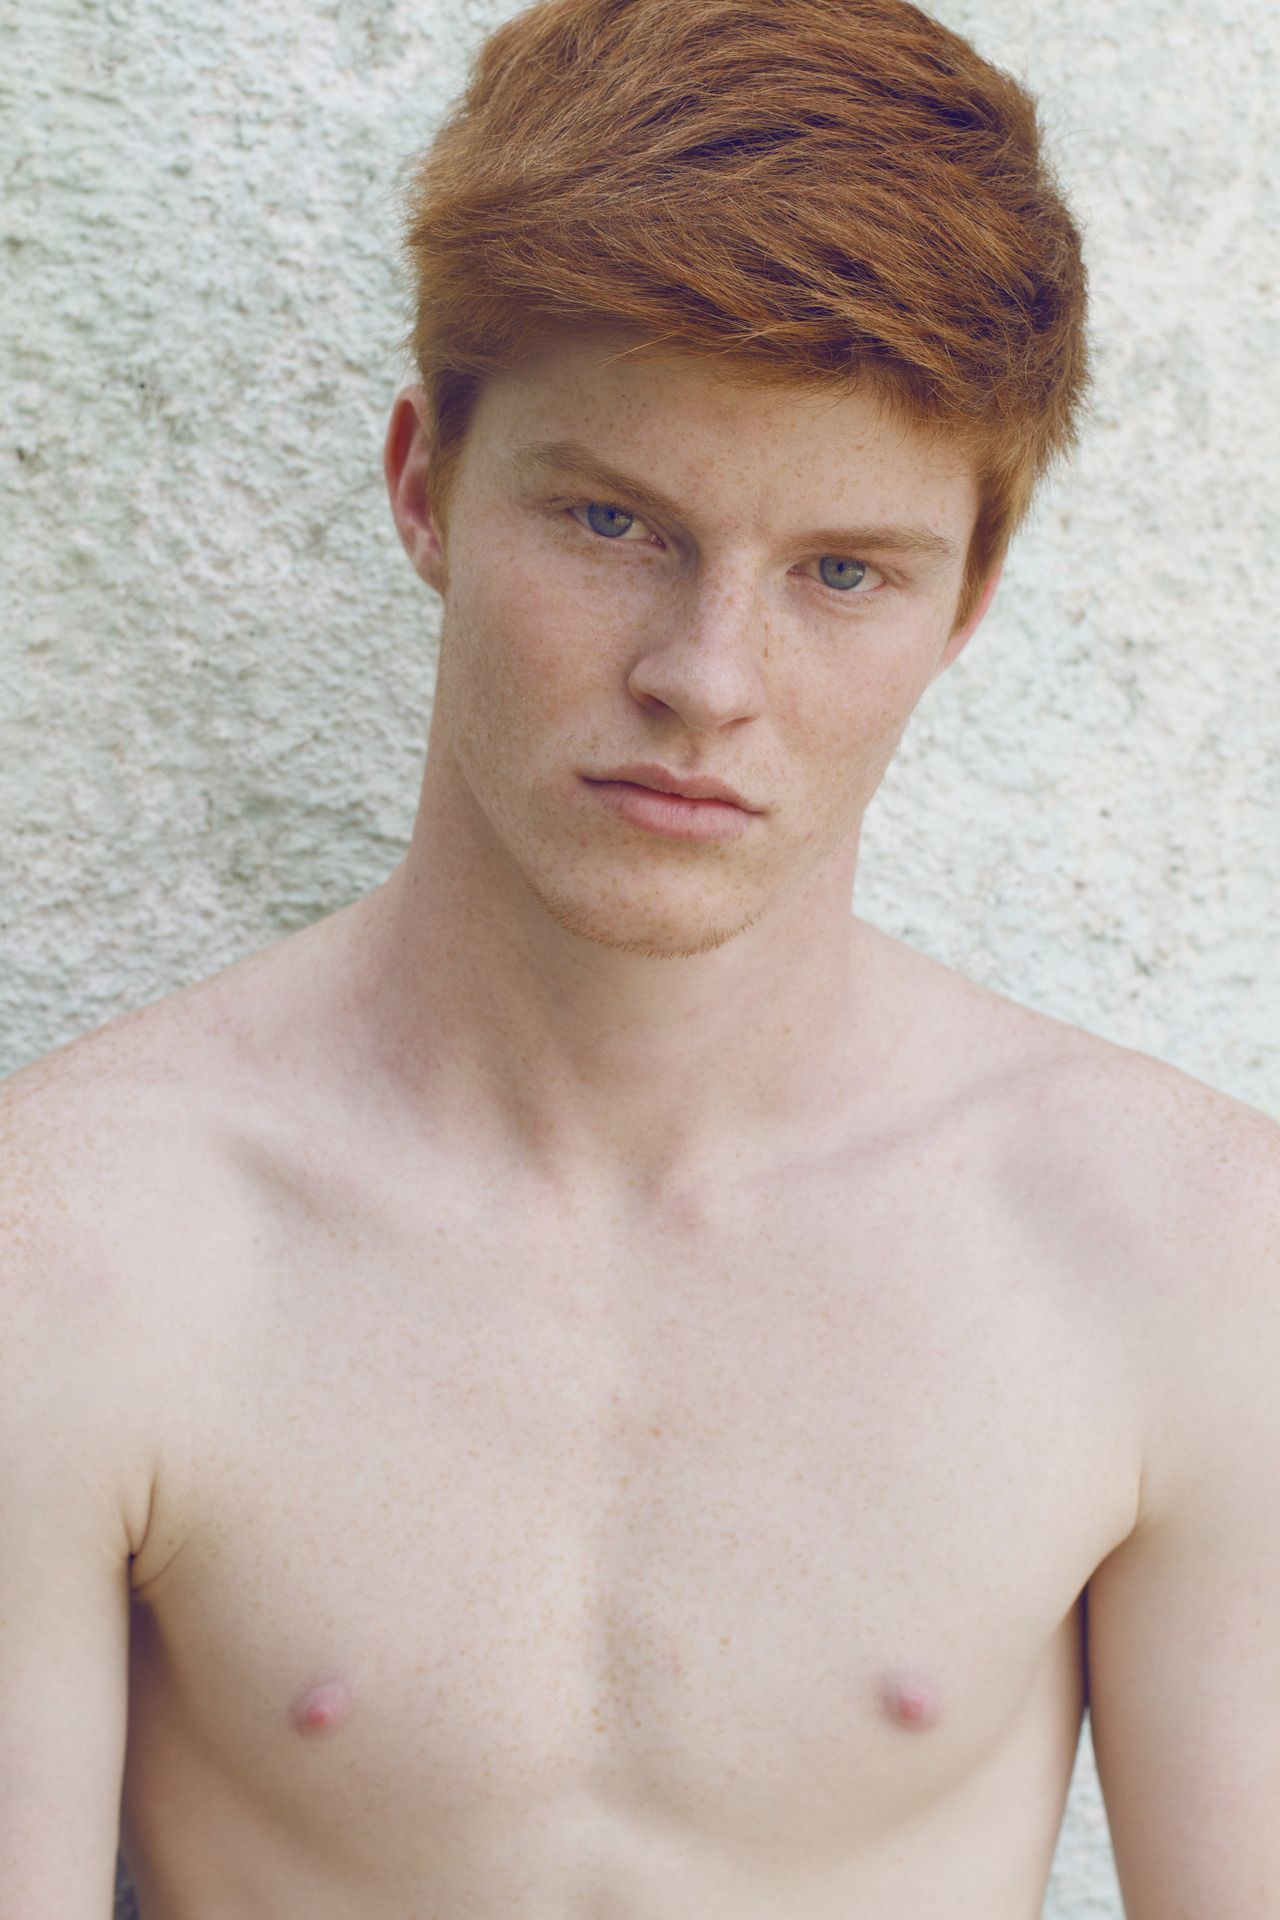 Red hair nude boys gay home made